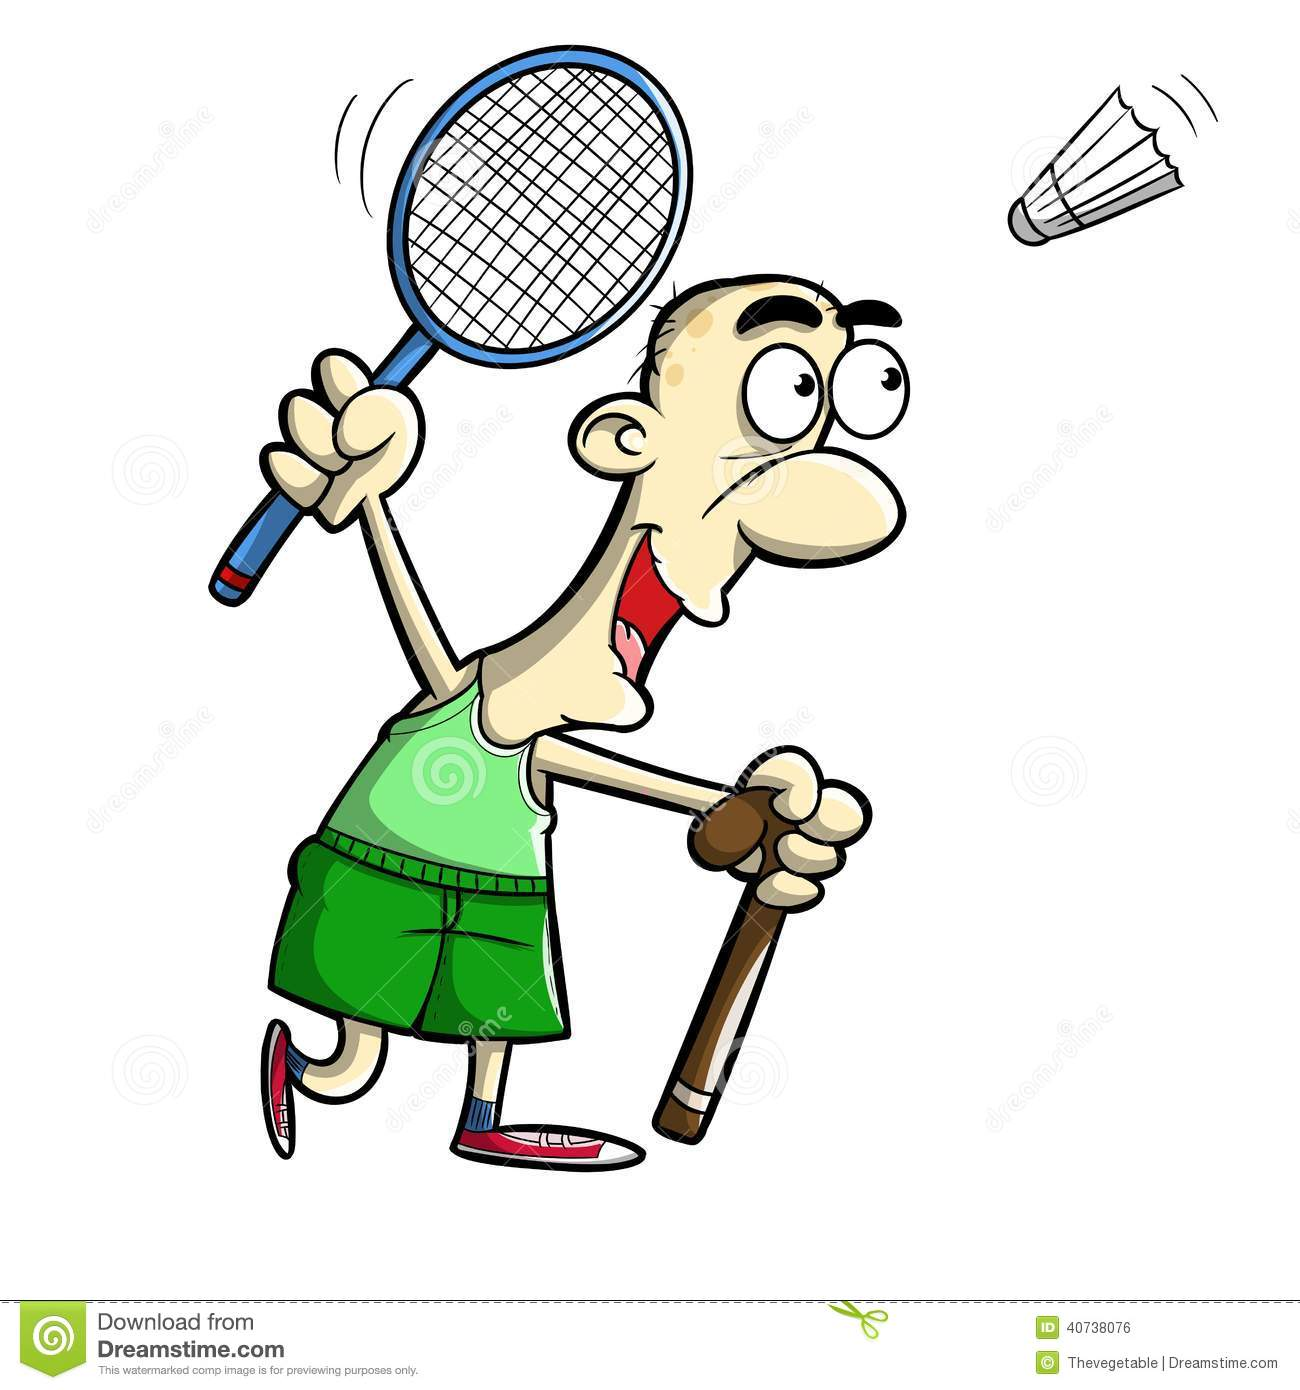 Royalty Free Stock Image Old Man Playing Badminton Illustration Ferry Happy Image40738076 furthermore Homero Simpson PSD26286 likewise Get Ready For Halloween With Smush Faced Dogs In Costumes furthermore Earving Johnson PSD56833 furthermore Product. on old ladies cartoon pictures 0